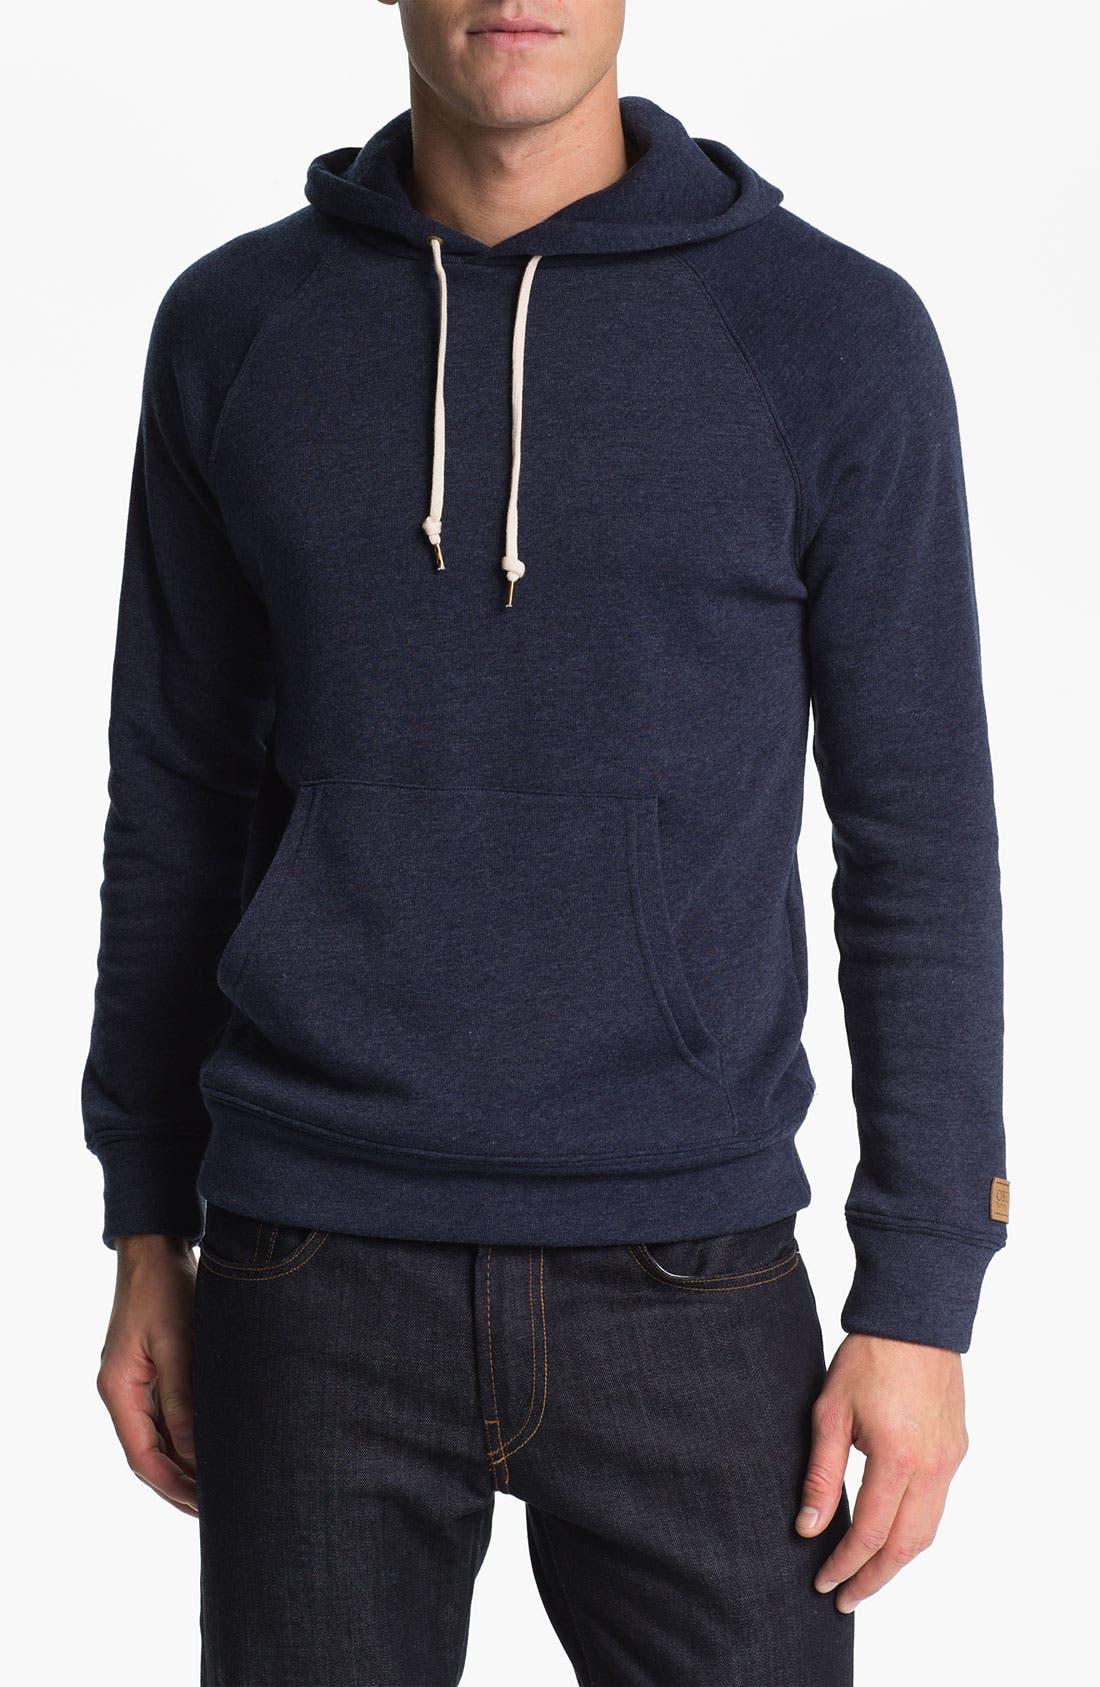 Alternate Image 1 Selected - Obey 'Lofty Creature Comforts' Hooded Sweatshirt